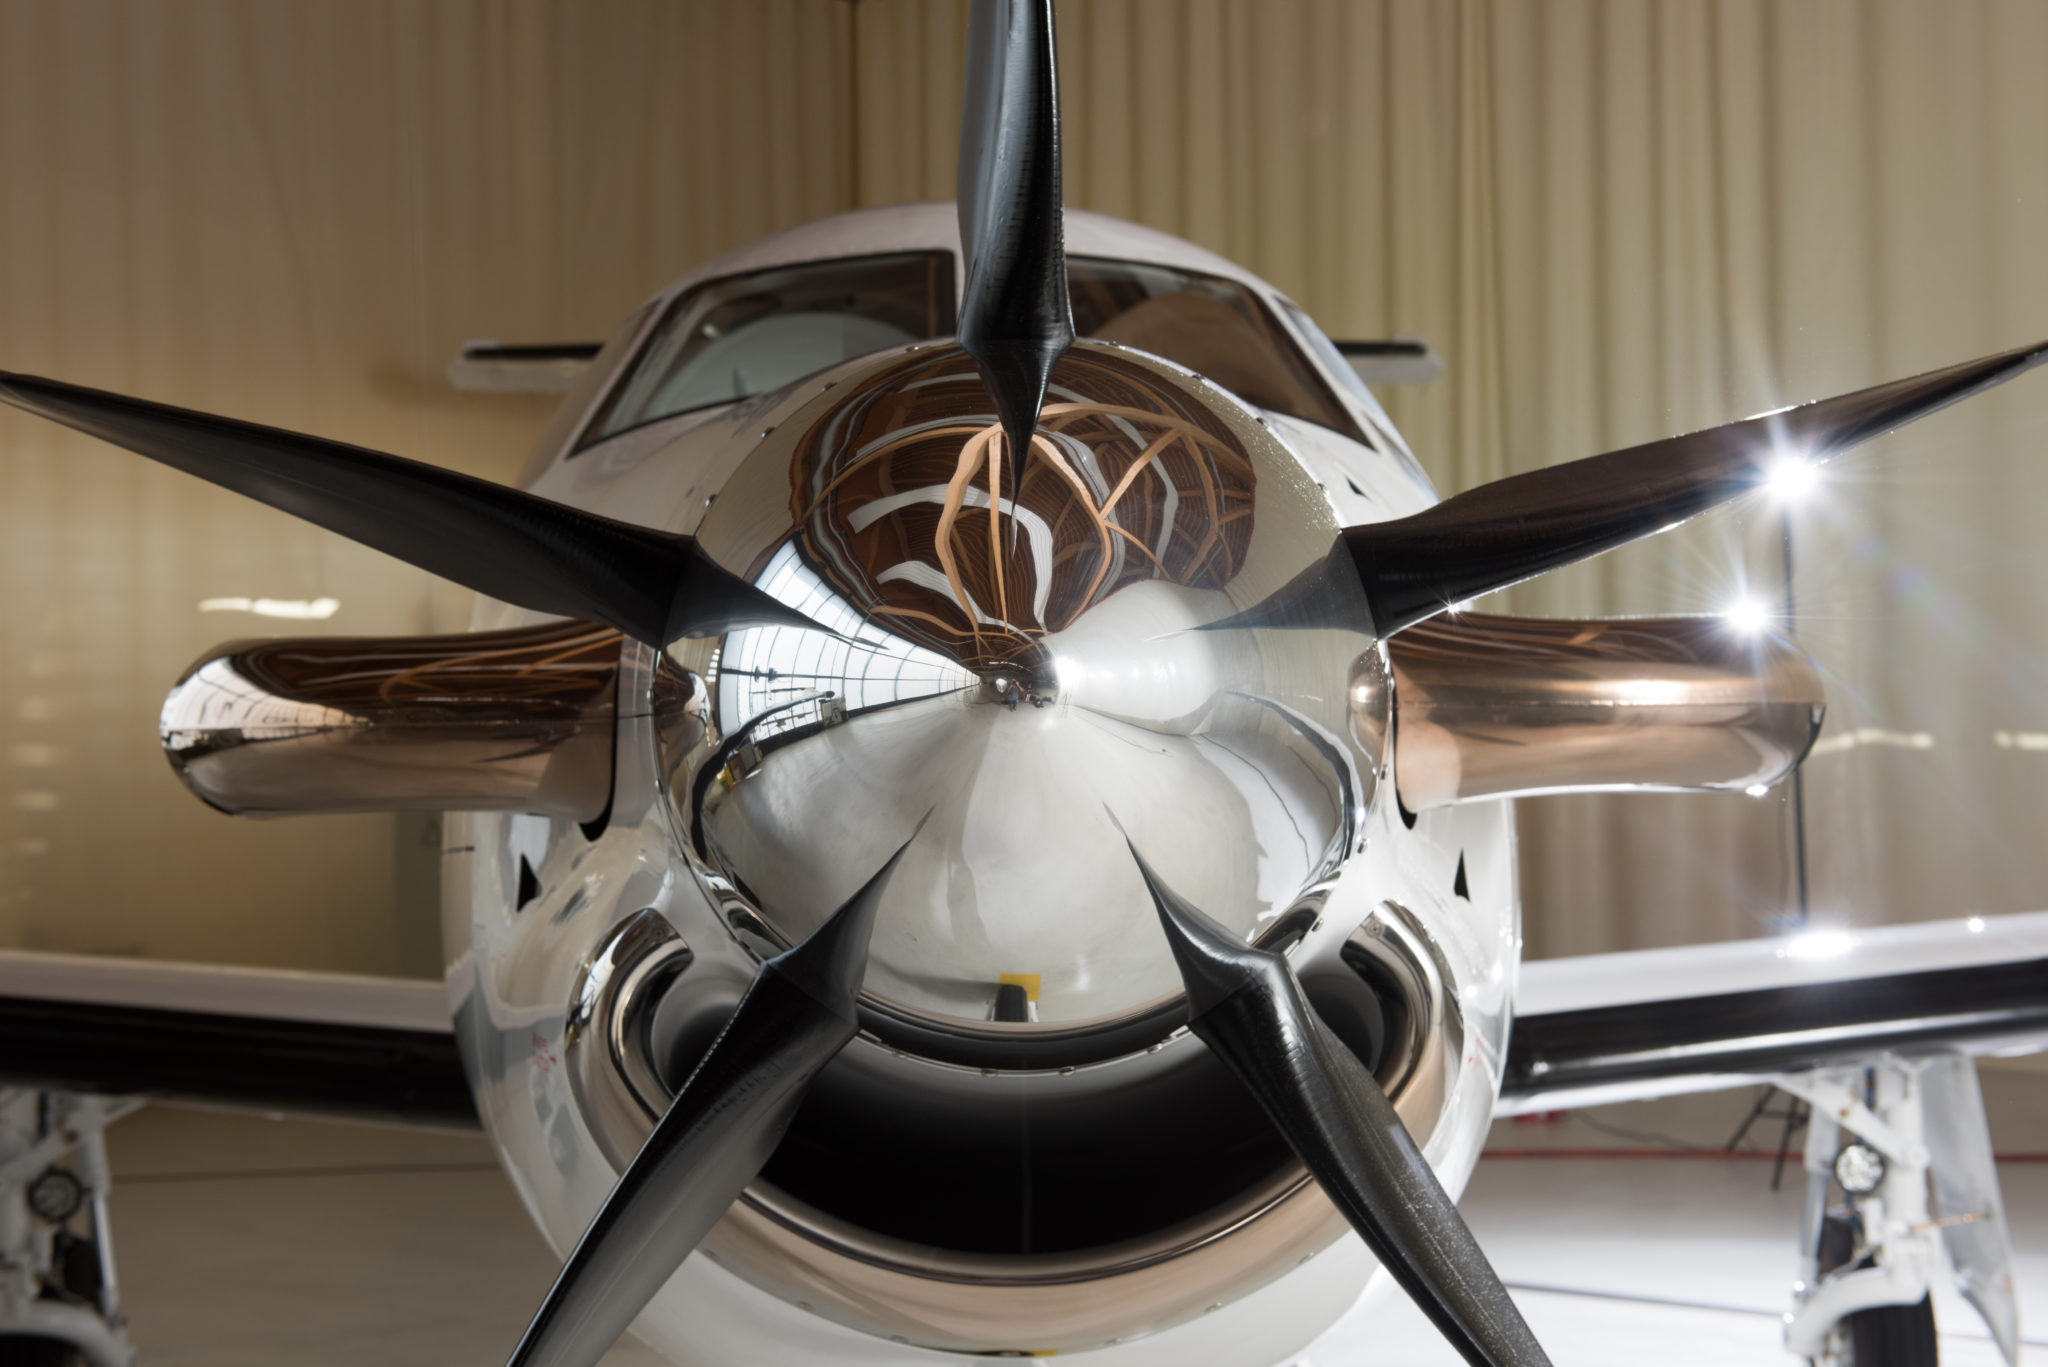 The propeller is not to be mistaken for old fashion as these planes can hold their own in the world of usefulness.